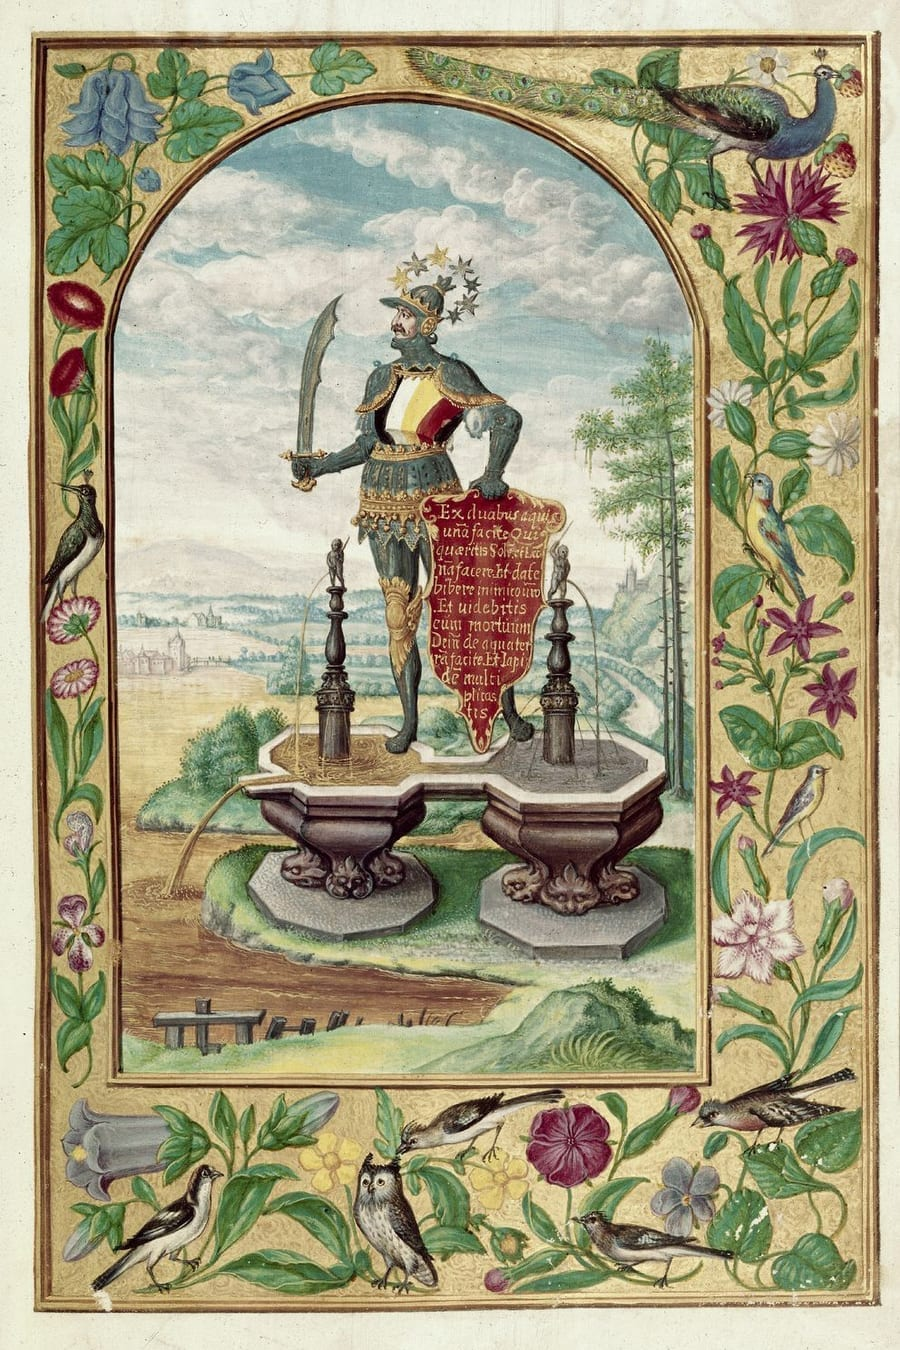 Illustration of knight with a drawn sword from the Alchemical manuscript Splendor Solis